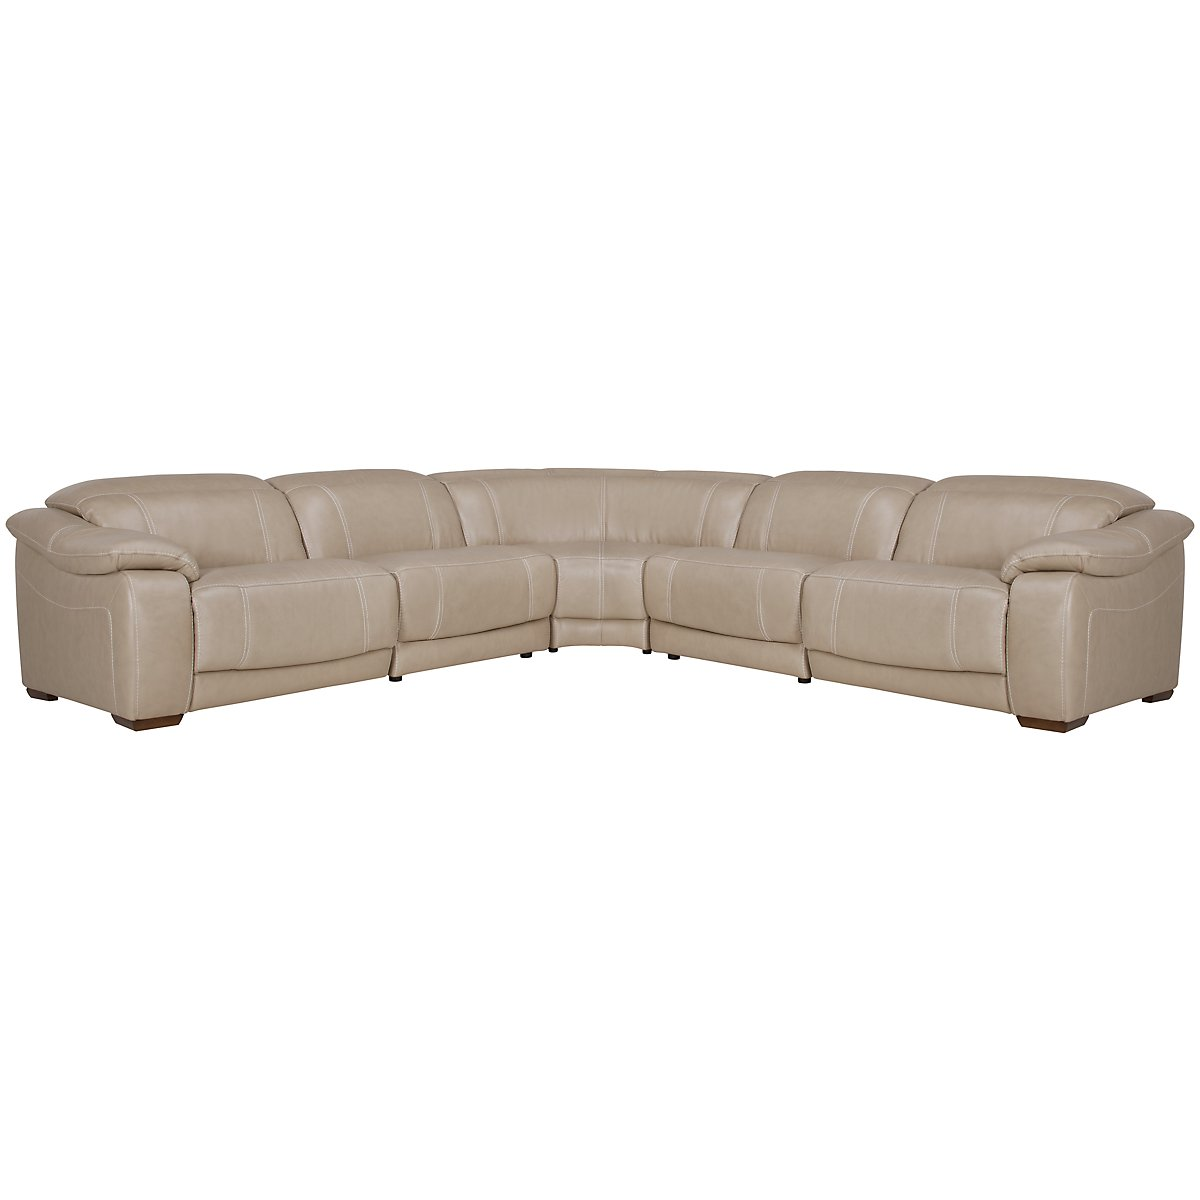 Orion Light Taupe Leather & Bonded Leather Small Two-Arm Power Reclining Sectional